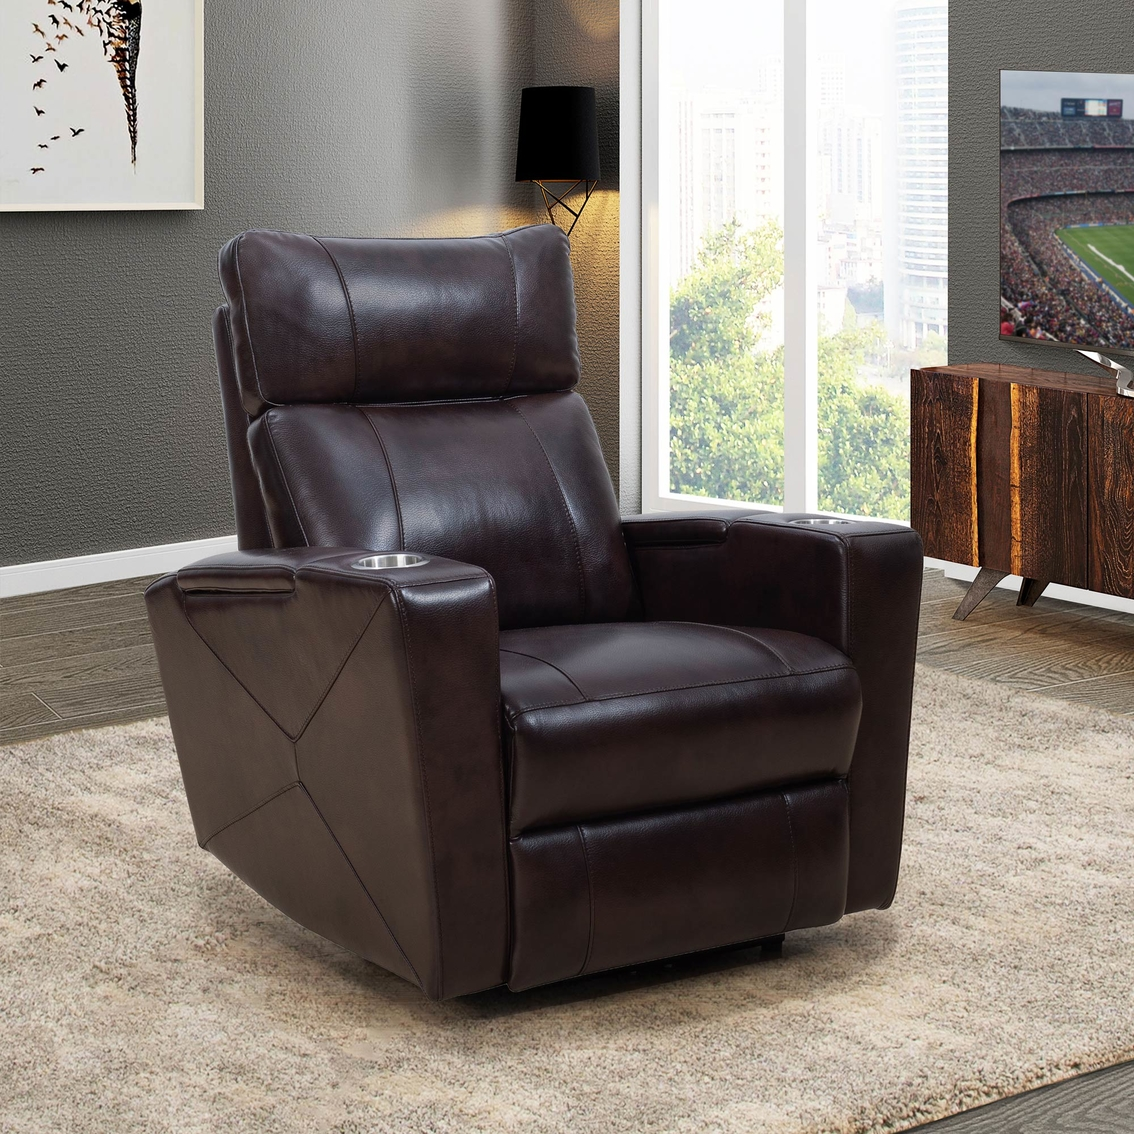 Outstanding Abbyson Chayne Power Theater Recliner Chairs Recliners Gmtry Best Dining Table And Chair Ideas Images Gmtryco